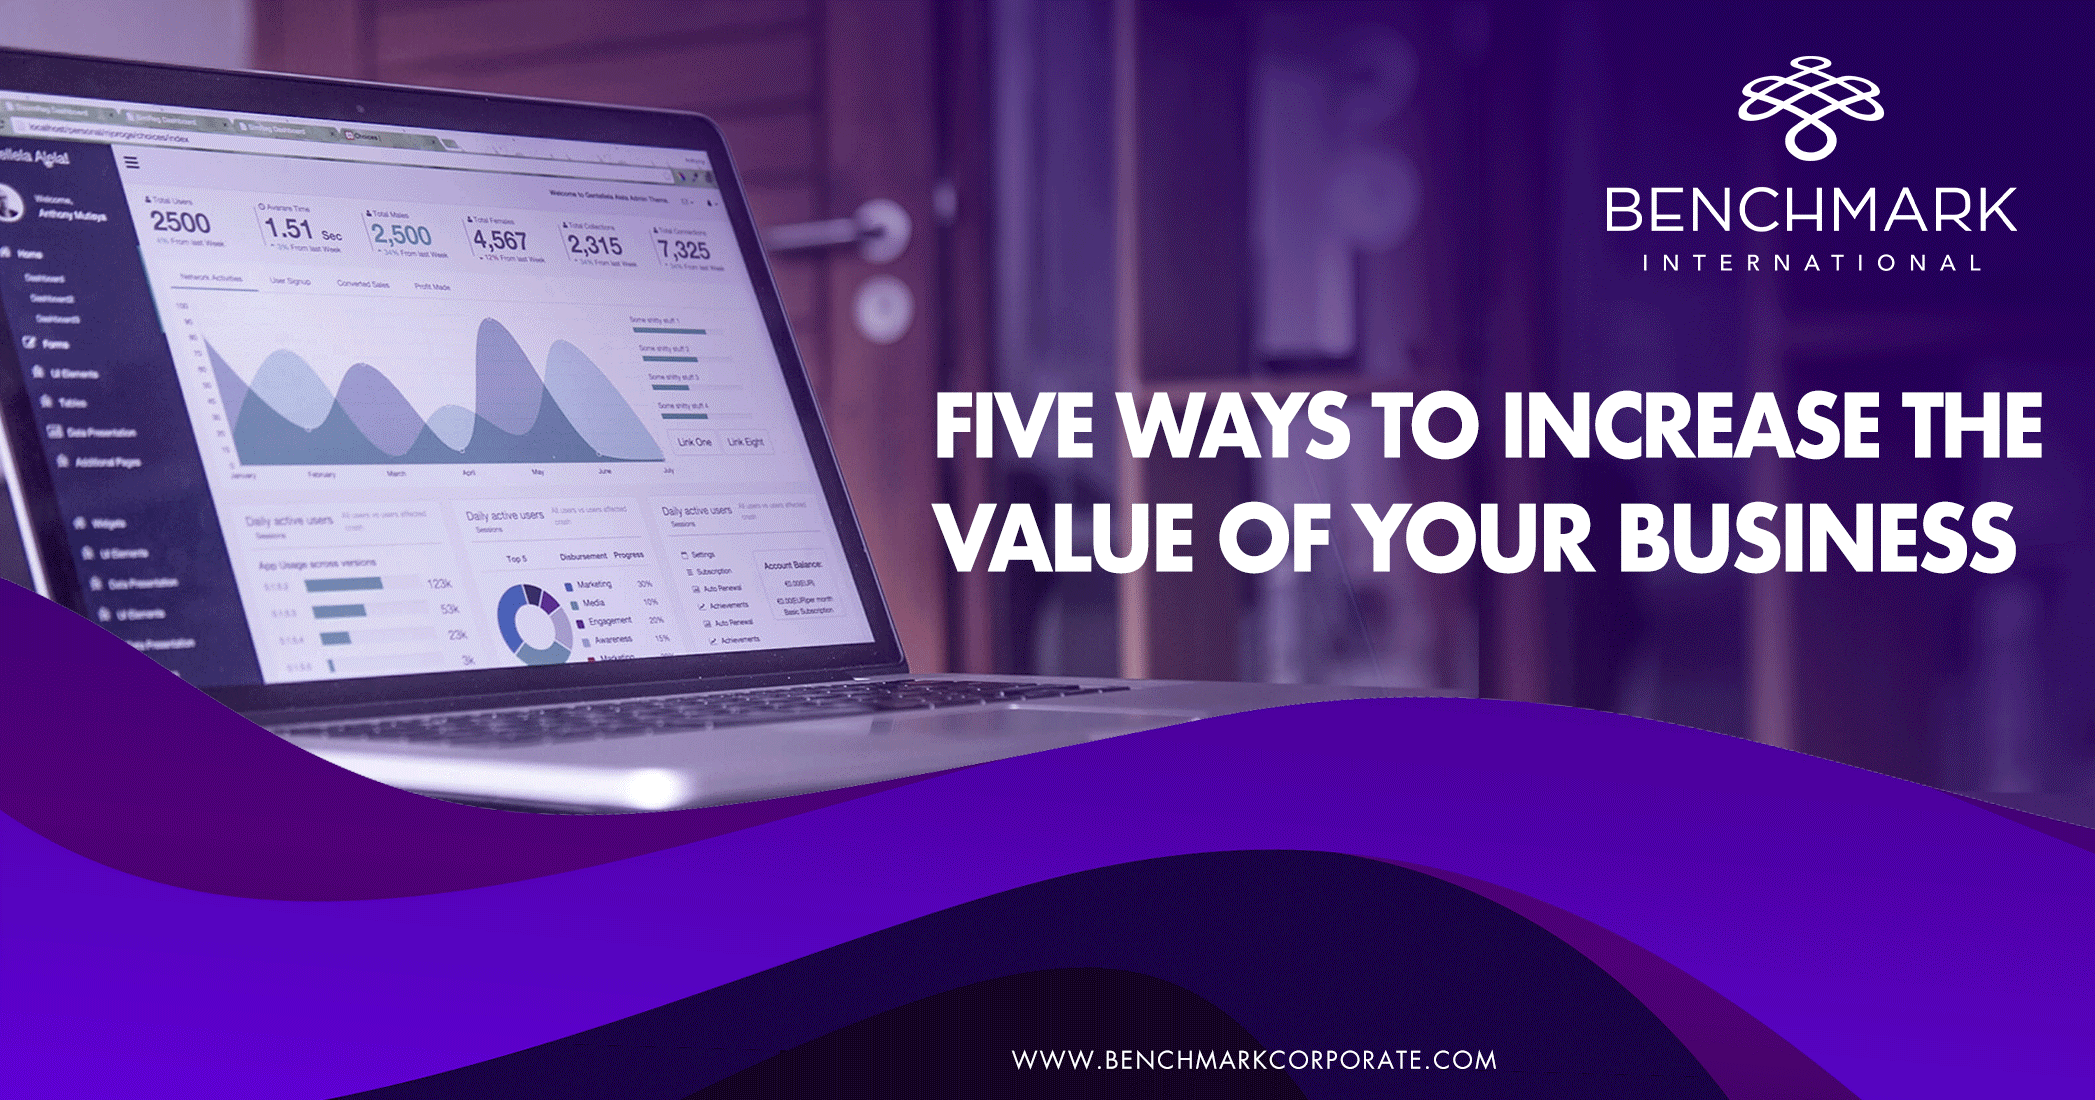 Five Ways to Increase the Value of Your Business